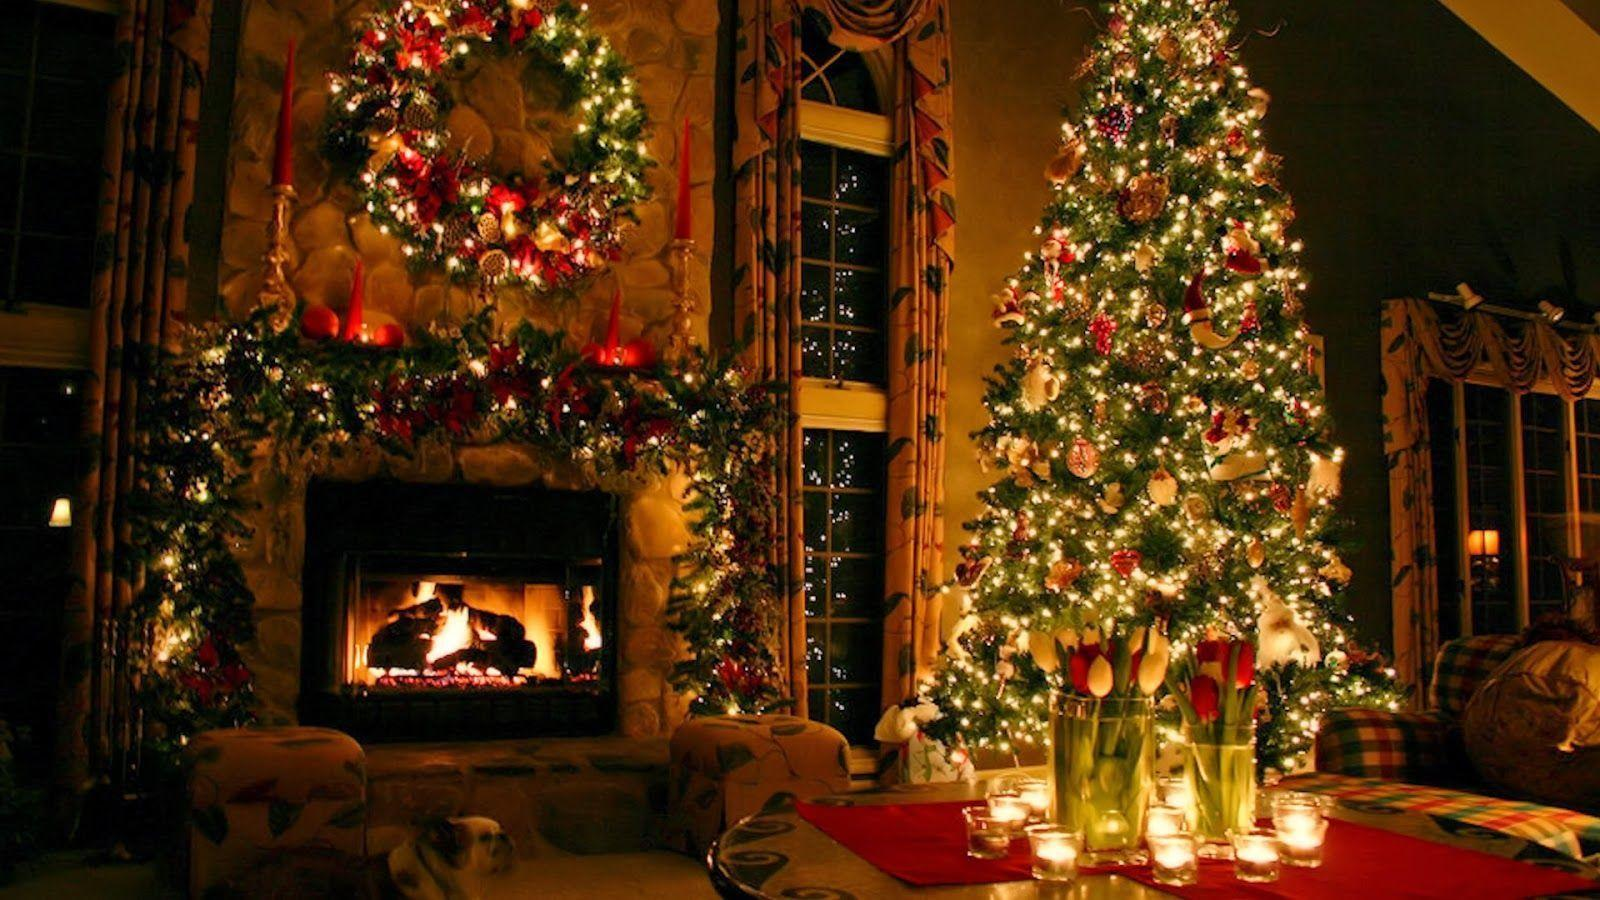 Hd Christmas Wallpaper.Christmas Wallpapers 1920x1080 Wallpaper Cave